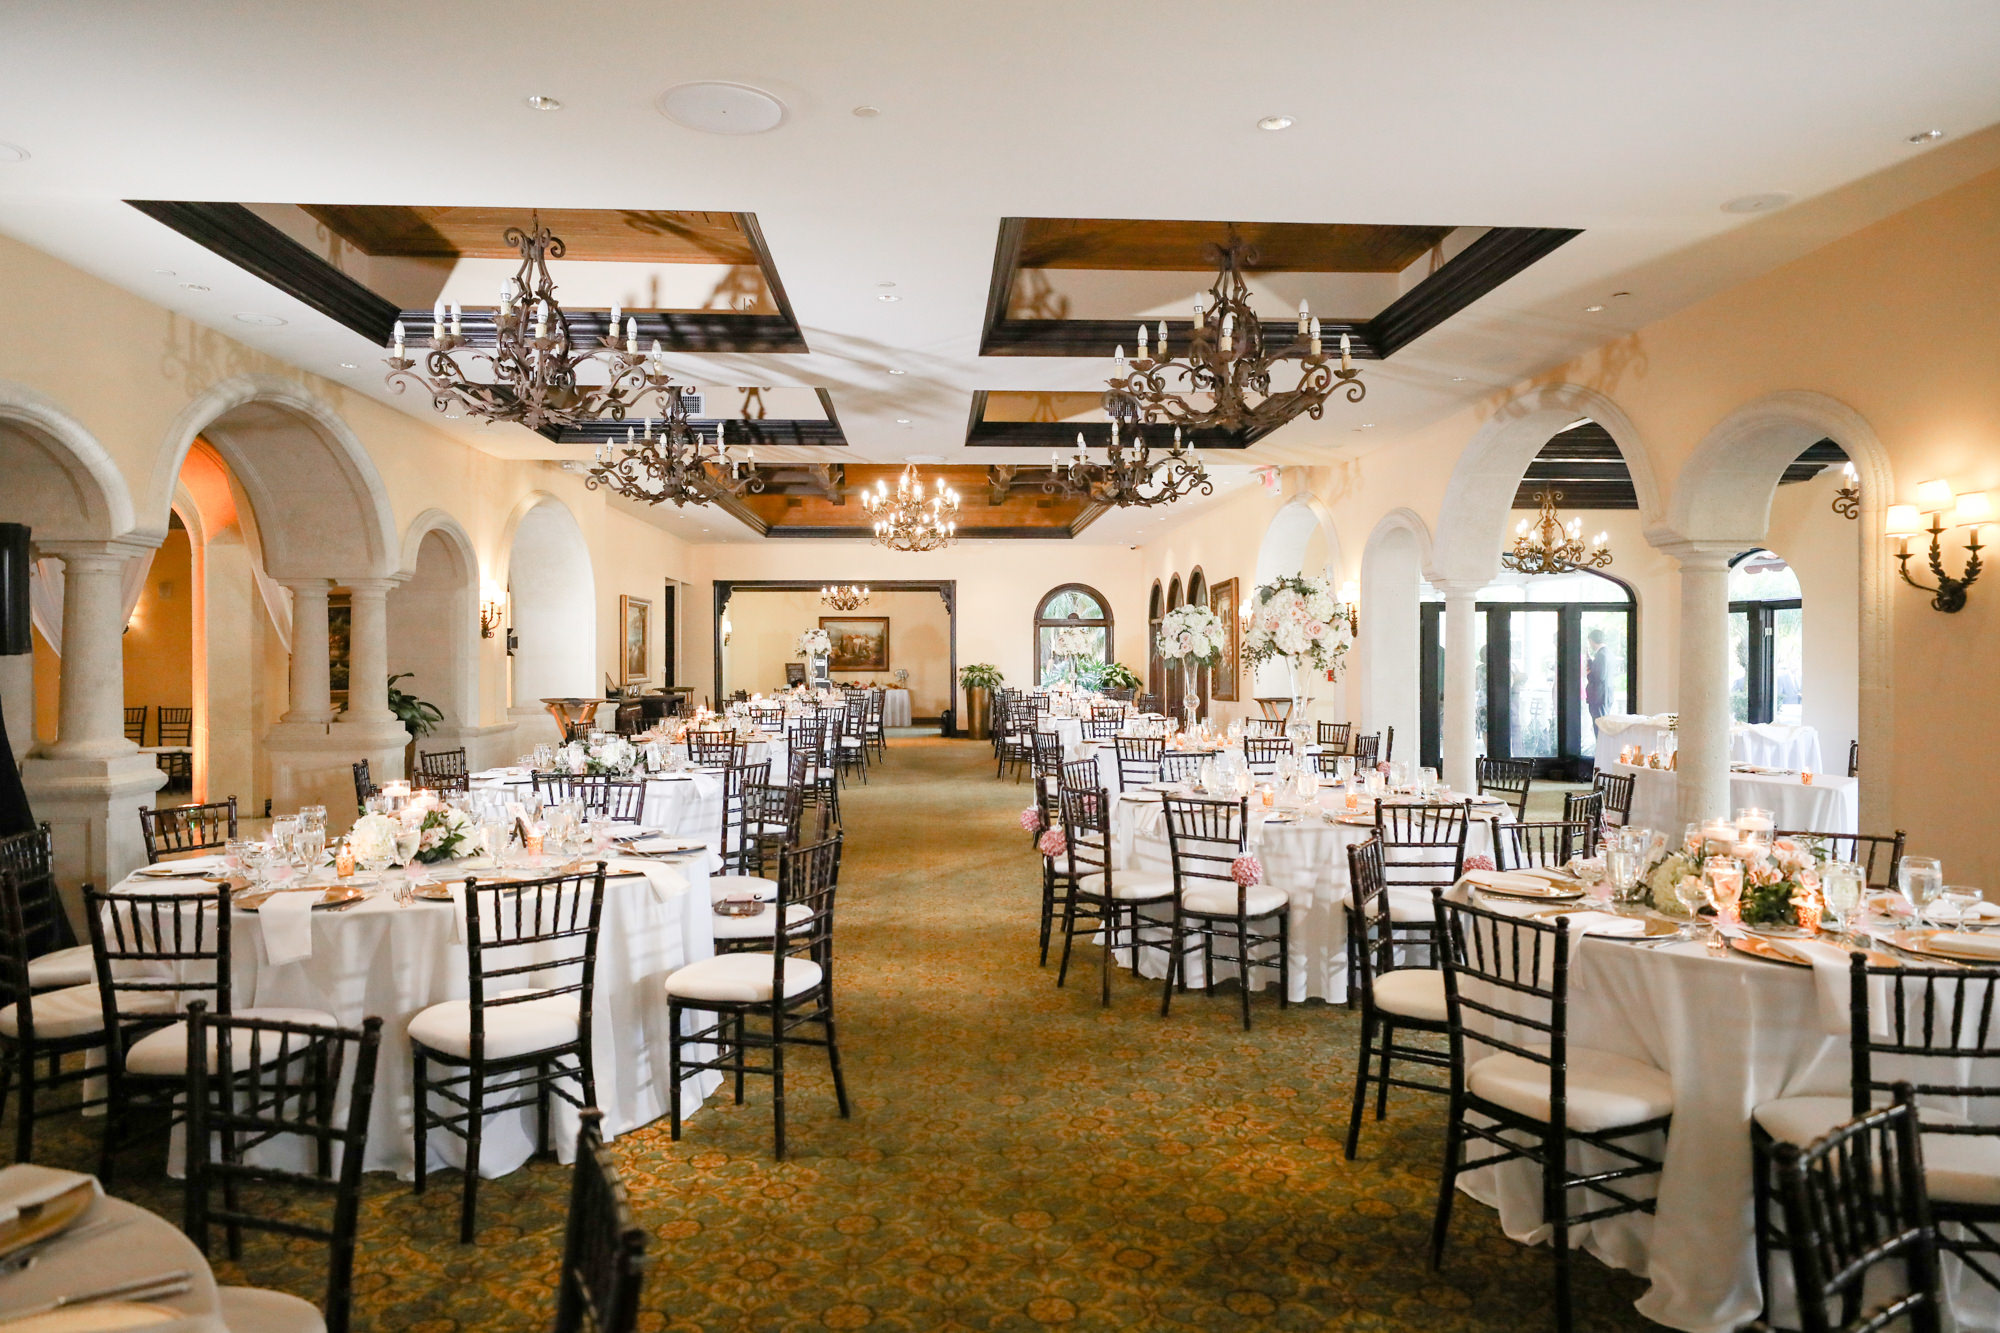 Romantic Indoor Ballroom Reception with Black Chiavari Chairs and Chandeliers | White Linens and Low Blush Pink Dusty Rose Centerpieces | Elegant Tampa Wedding Venue Avila Golf & Country Club